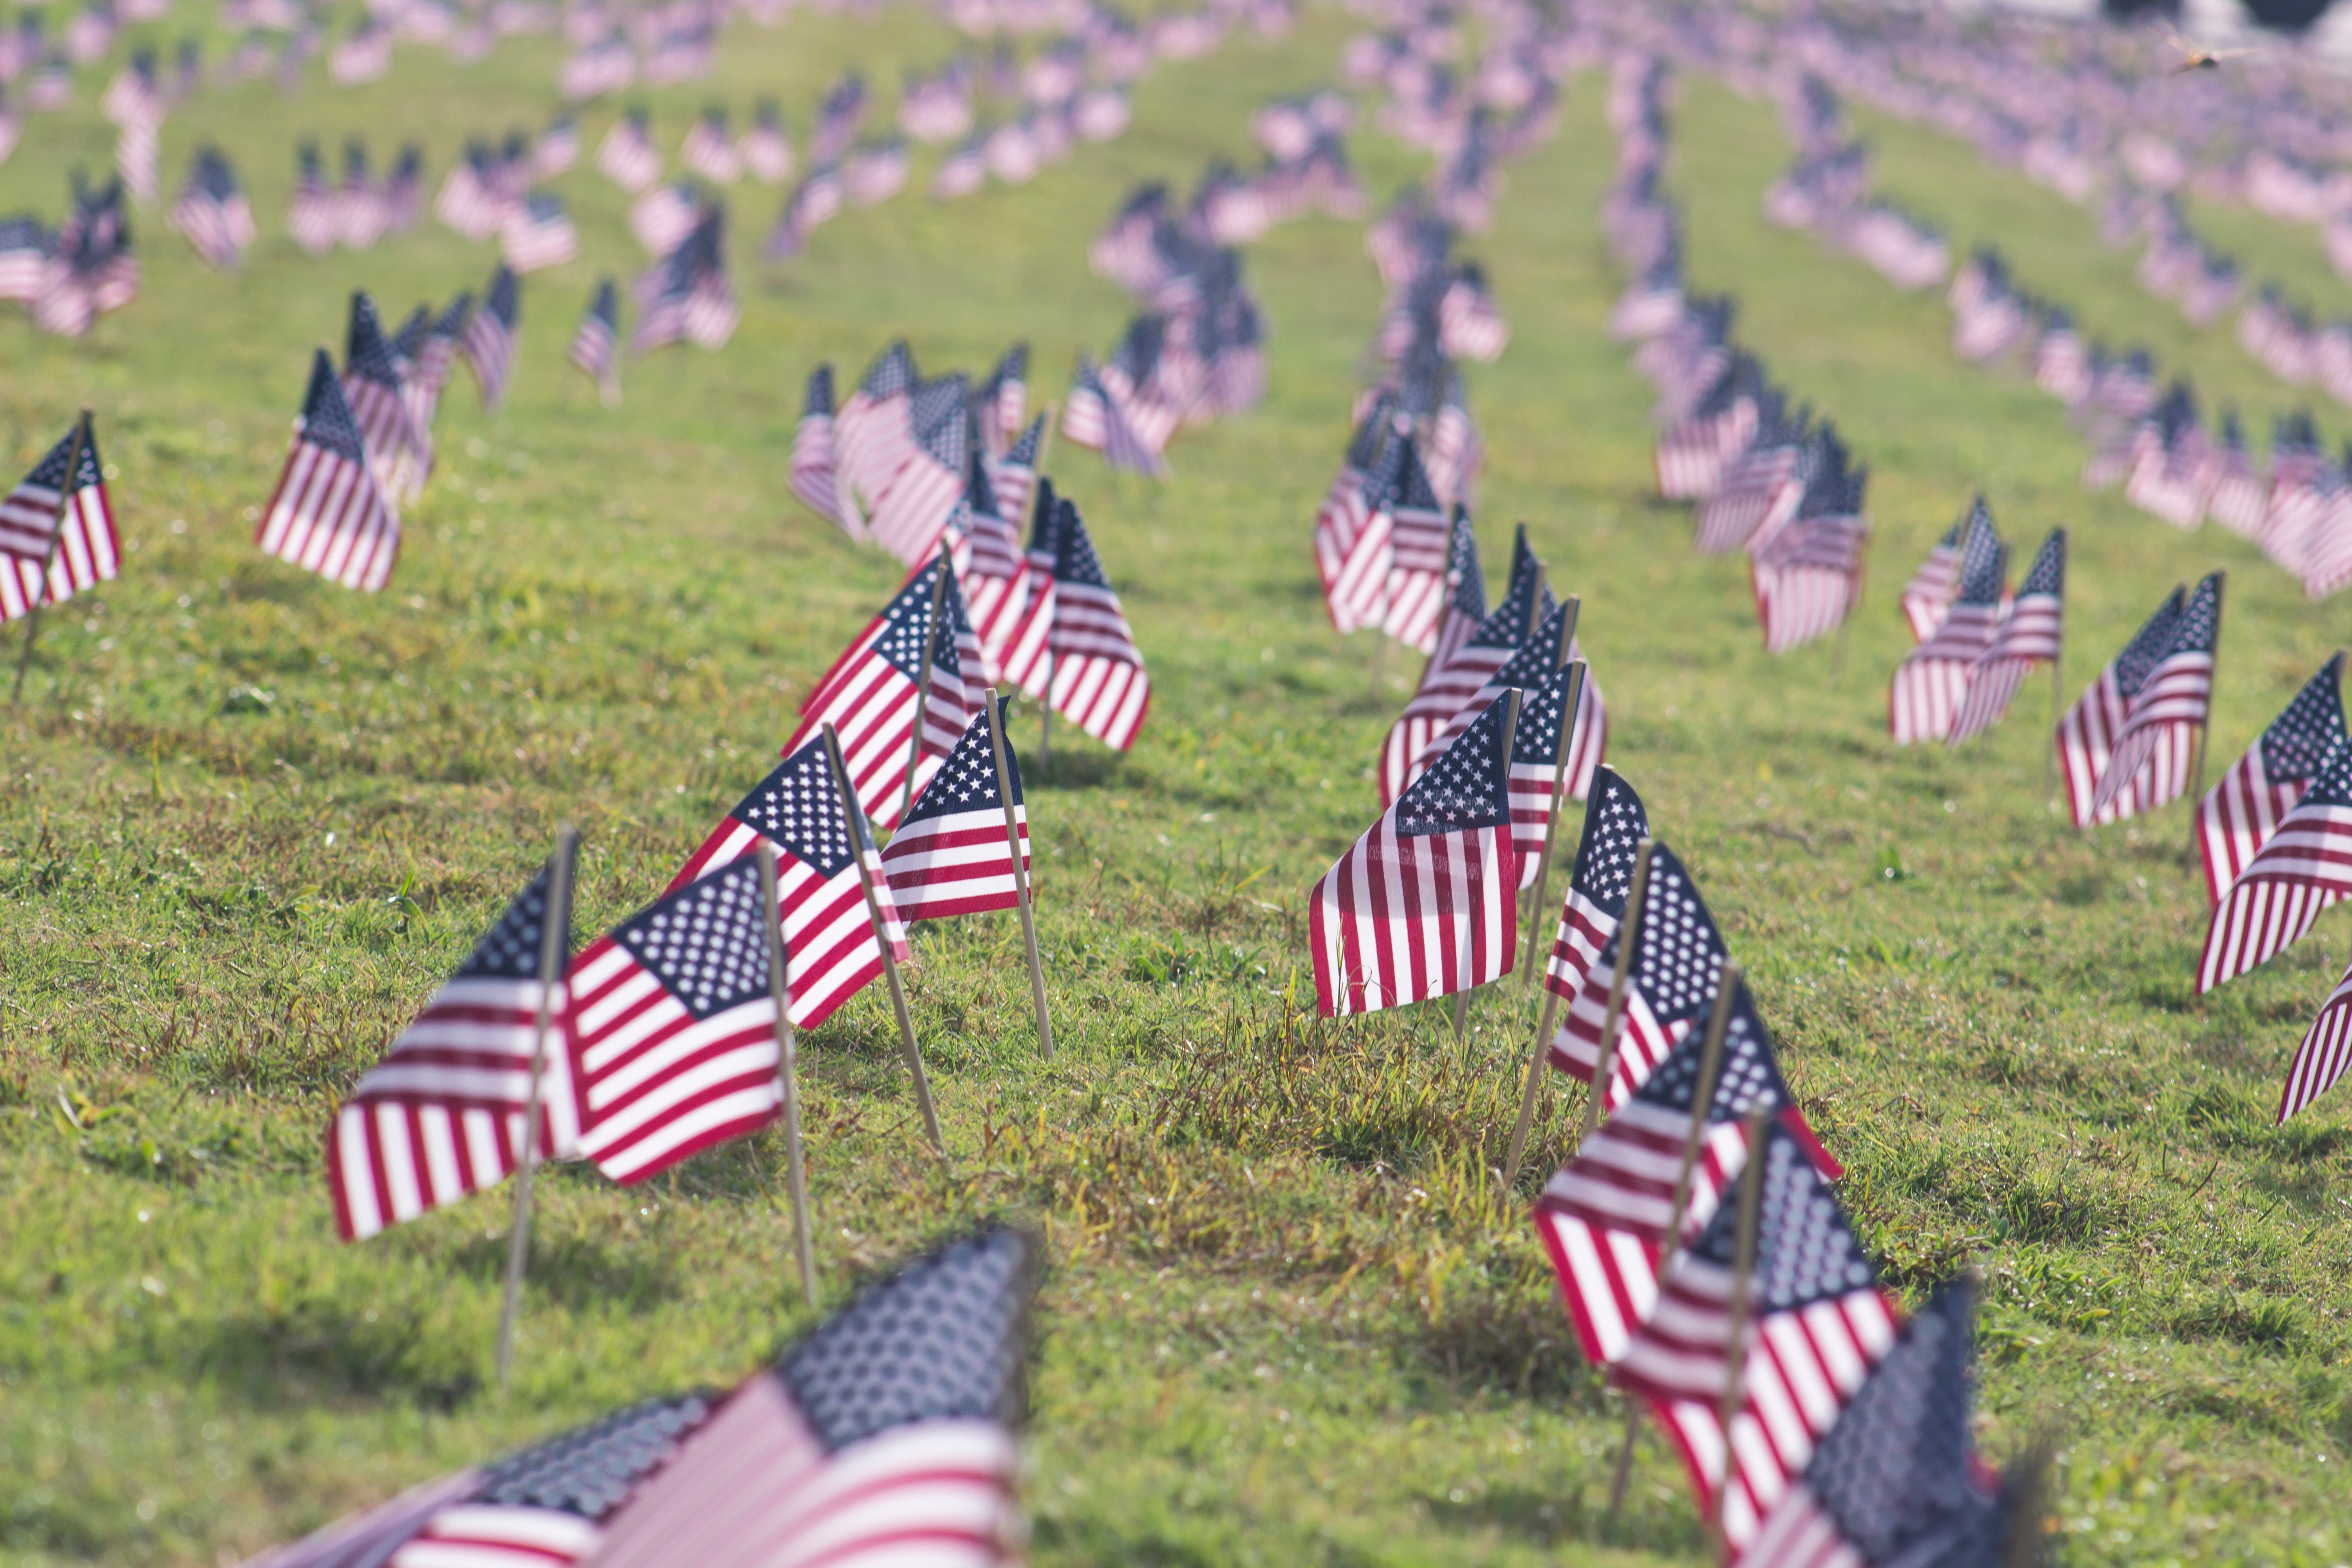 andrew pons 33896 unsplash - This Monday we celebrate Memorial Day